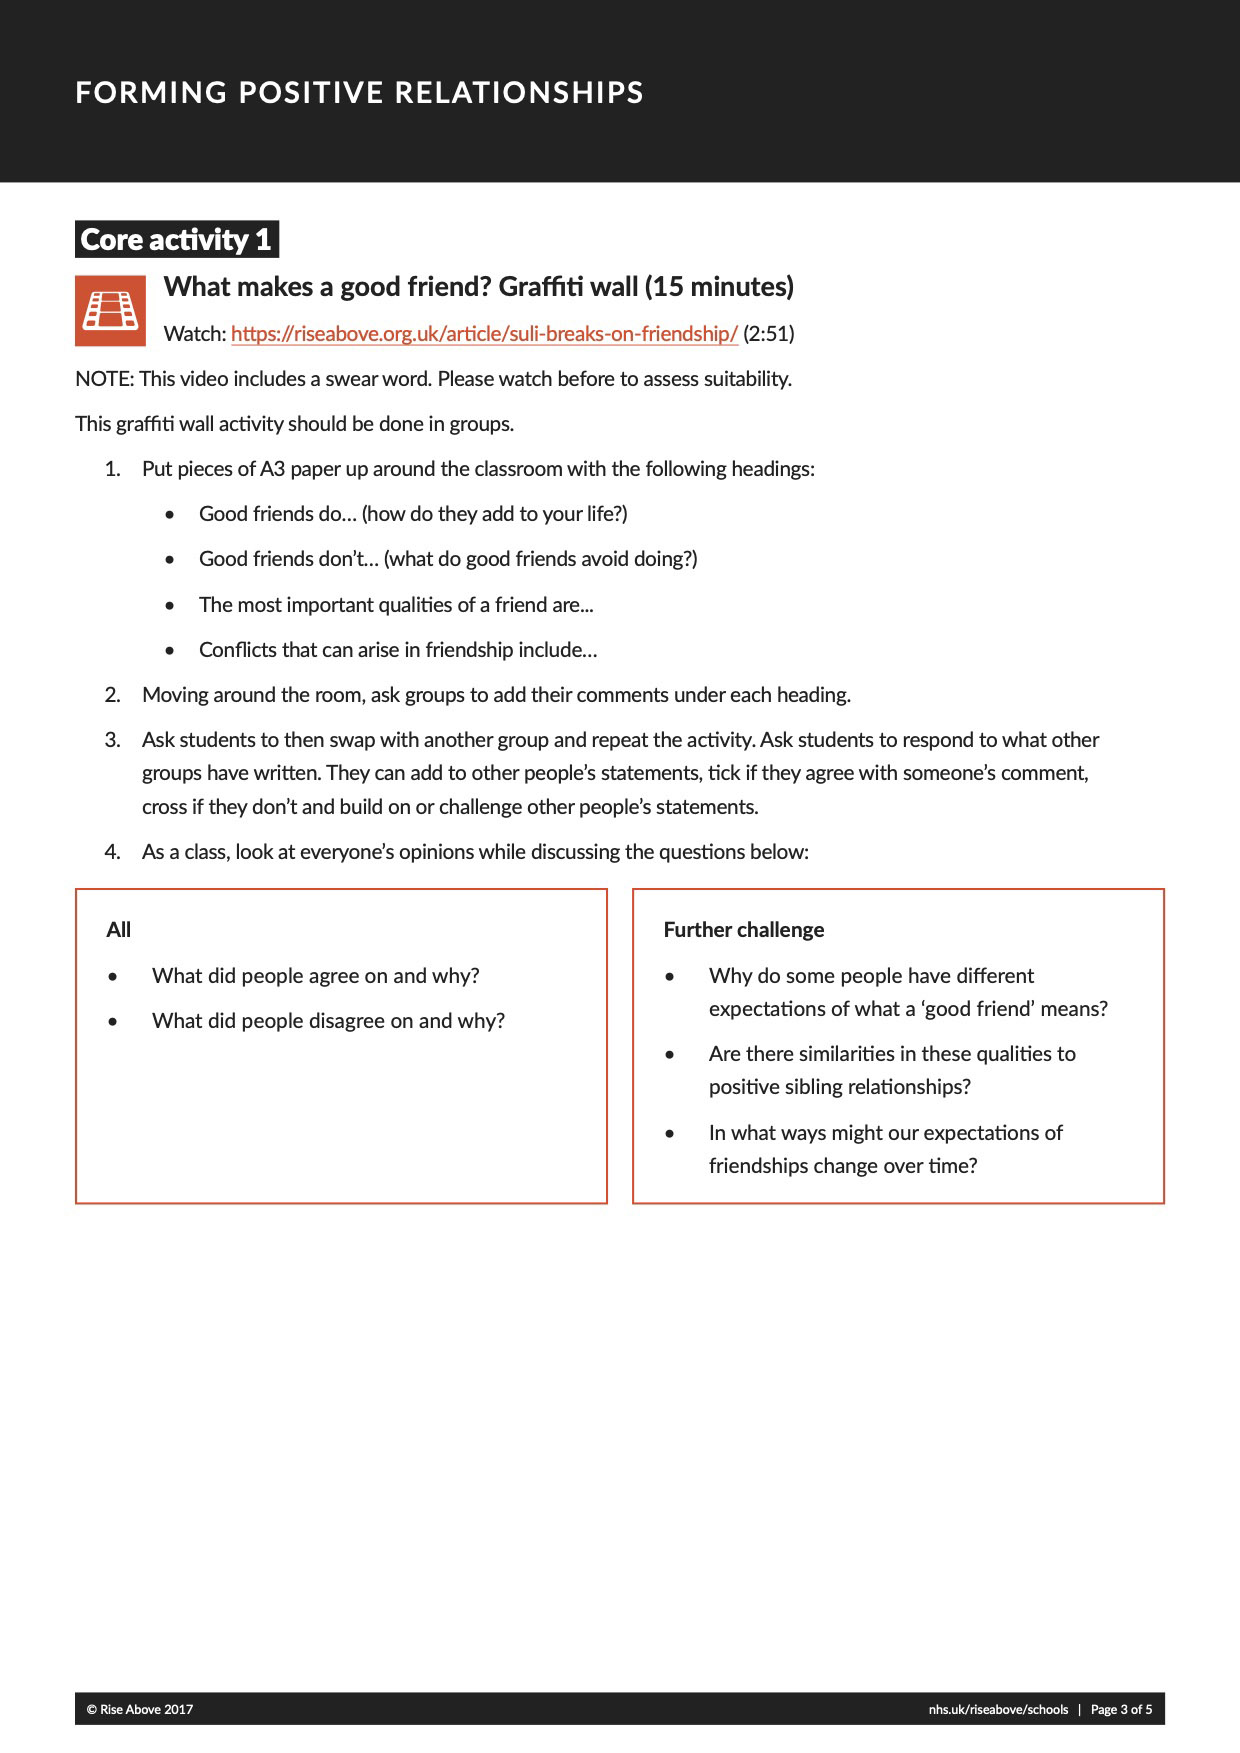 Forming positive relationships lesson plan pack